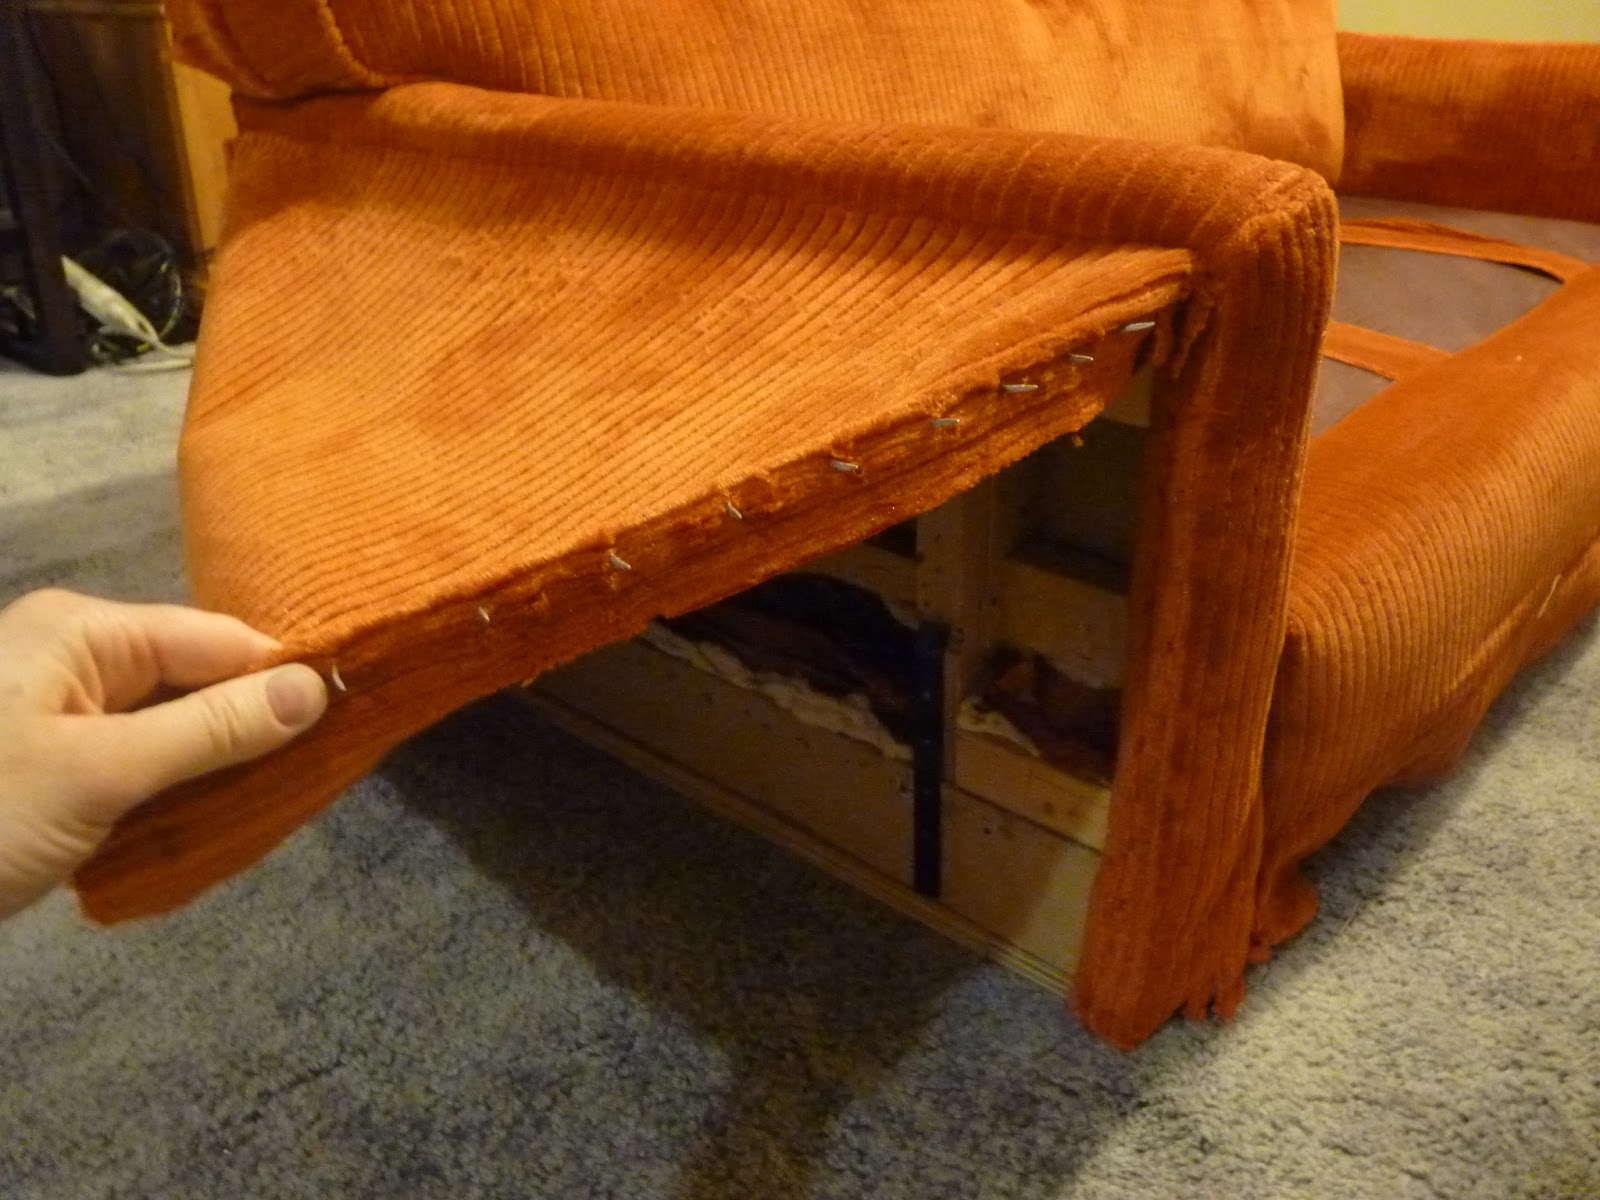 How Do You Remove Permanent Marker From Leather Sofa Anfibio Bed D I Y E S G N To Re Upholster A